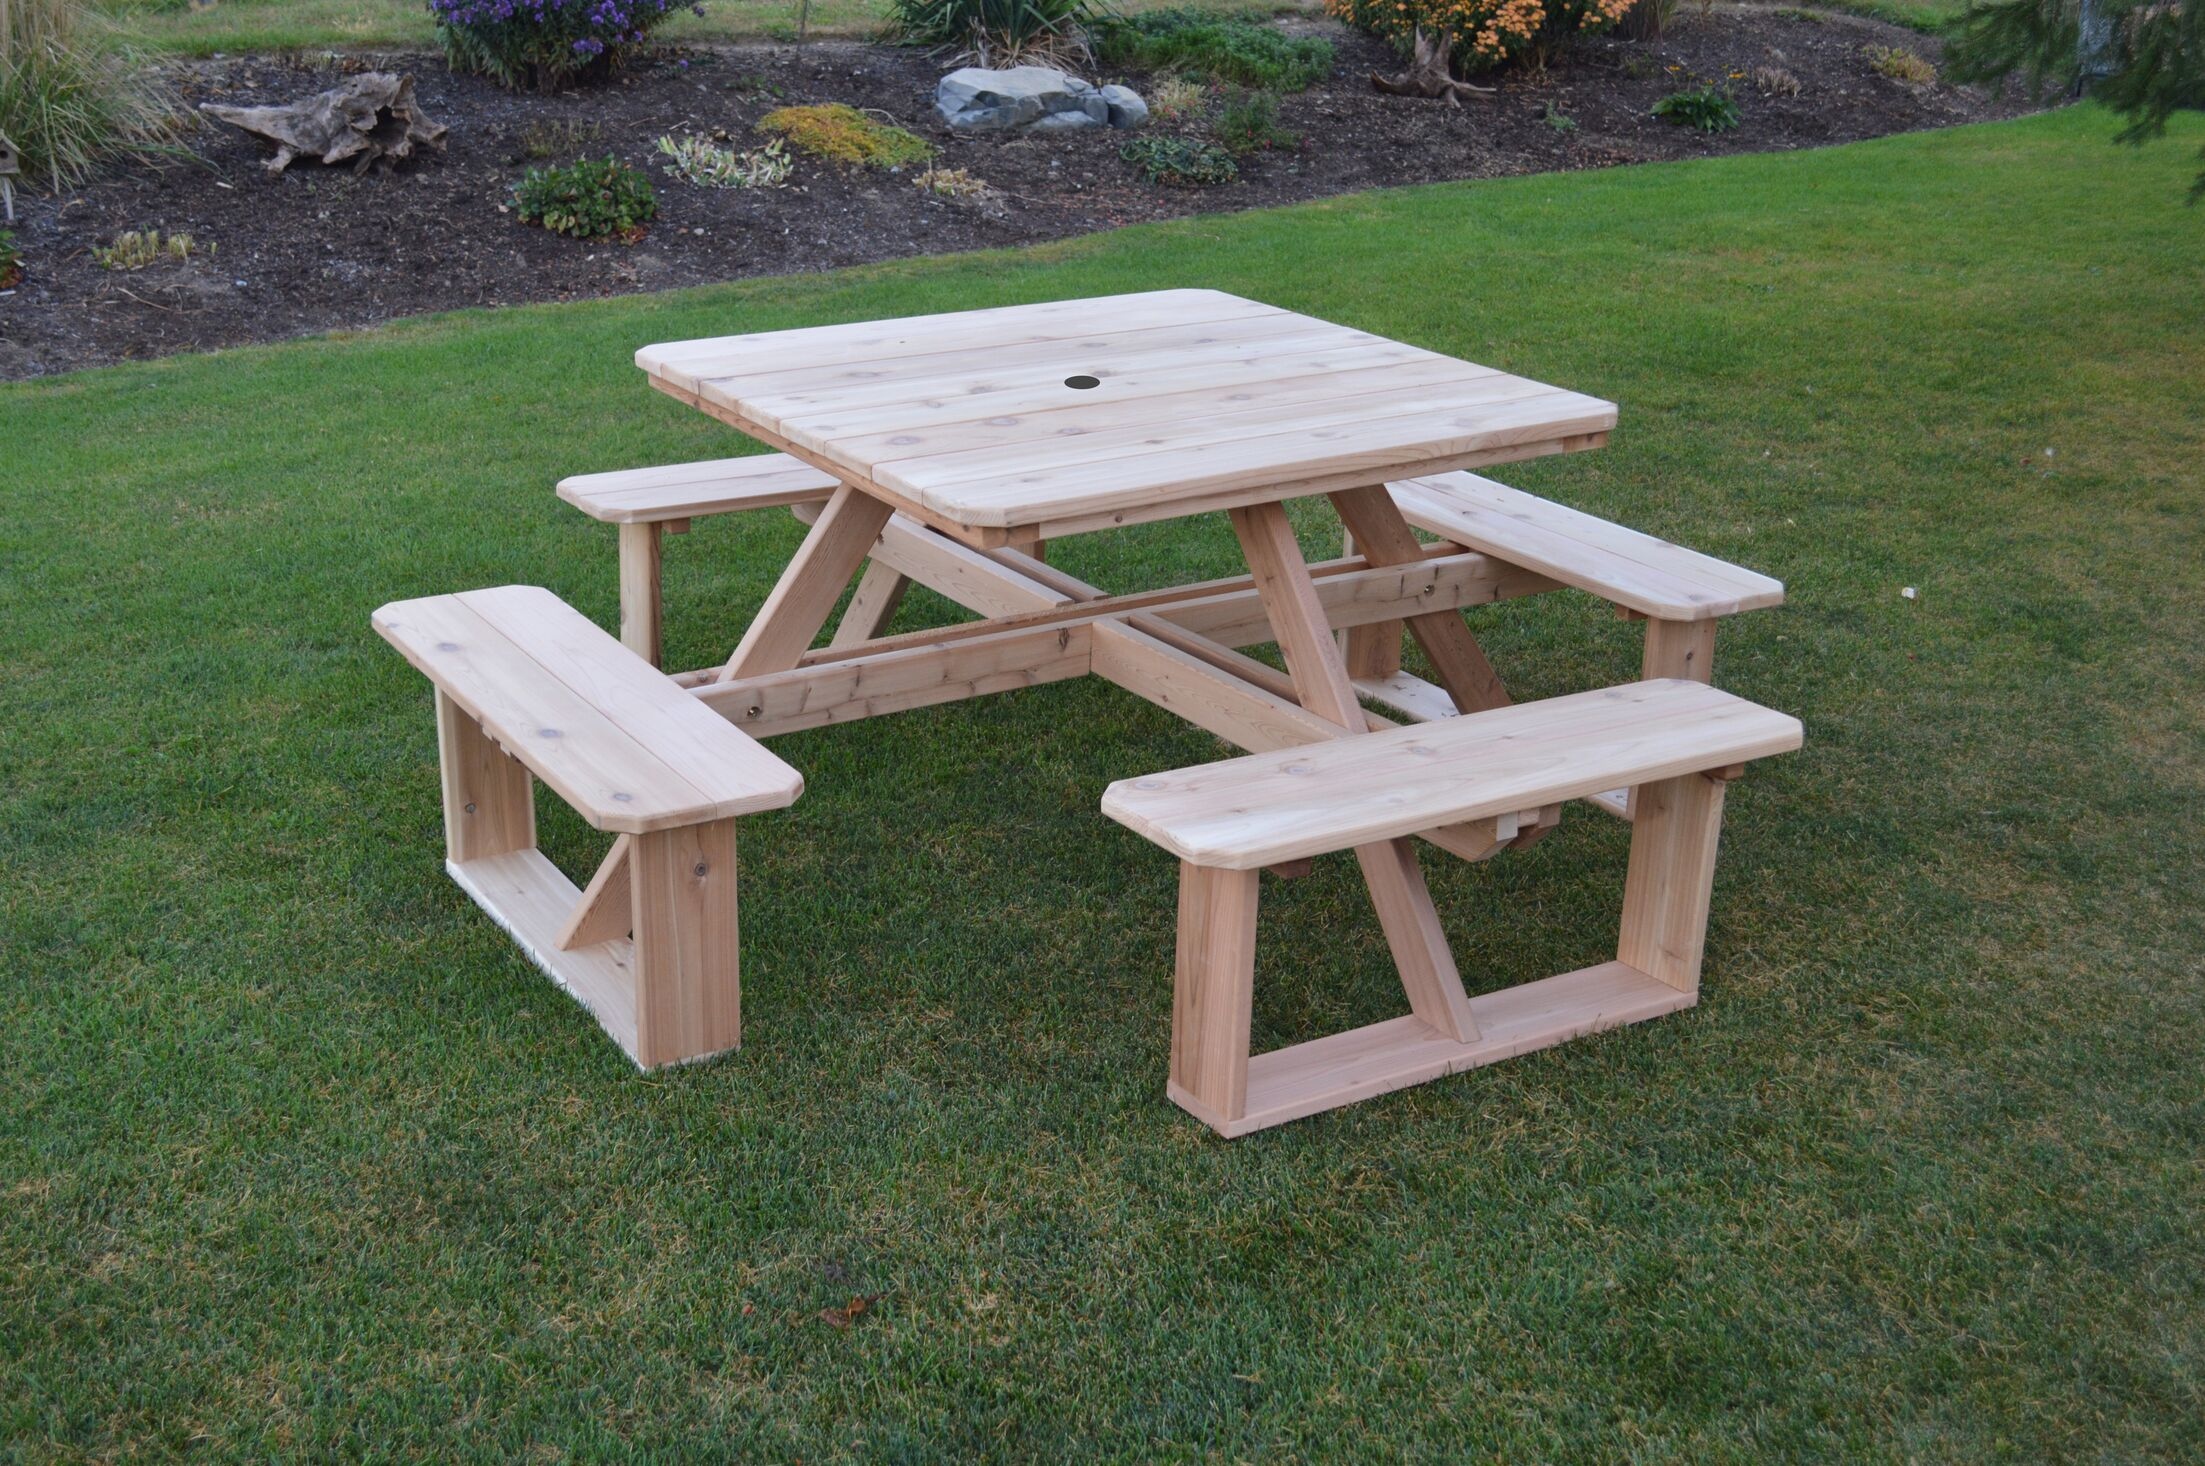 Law-Simmonds Wooden Picnic Table Color: Linden Leaf Stain